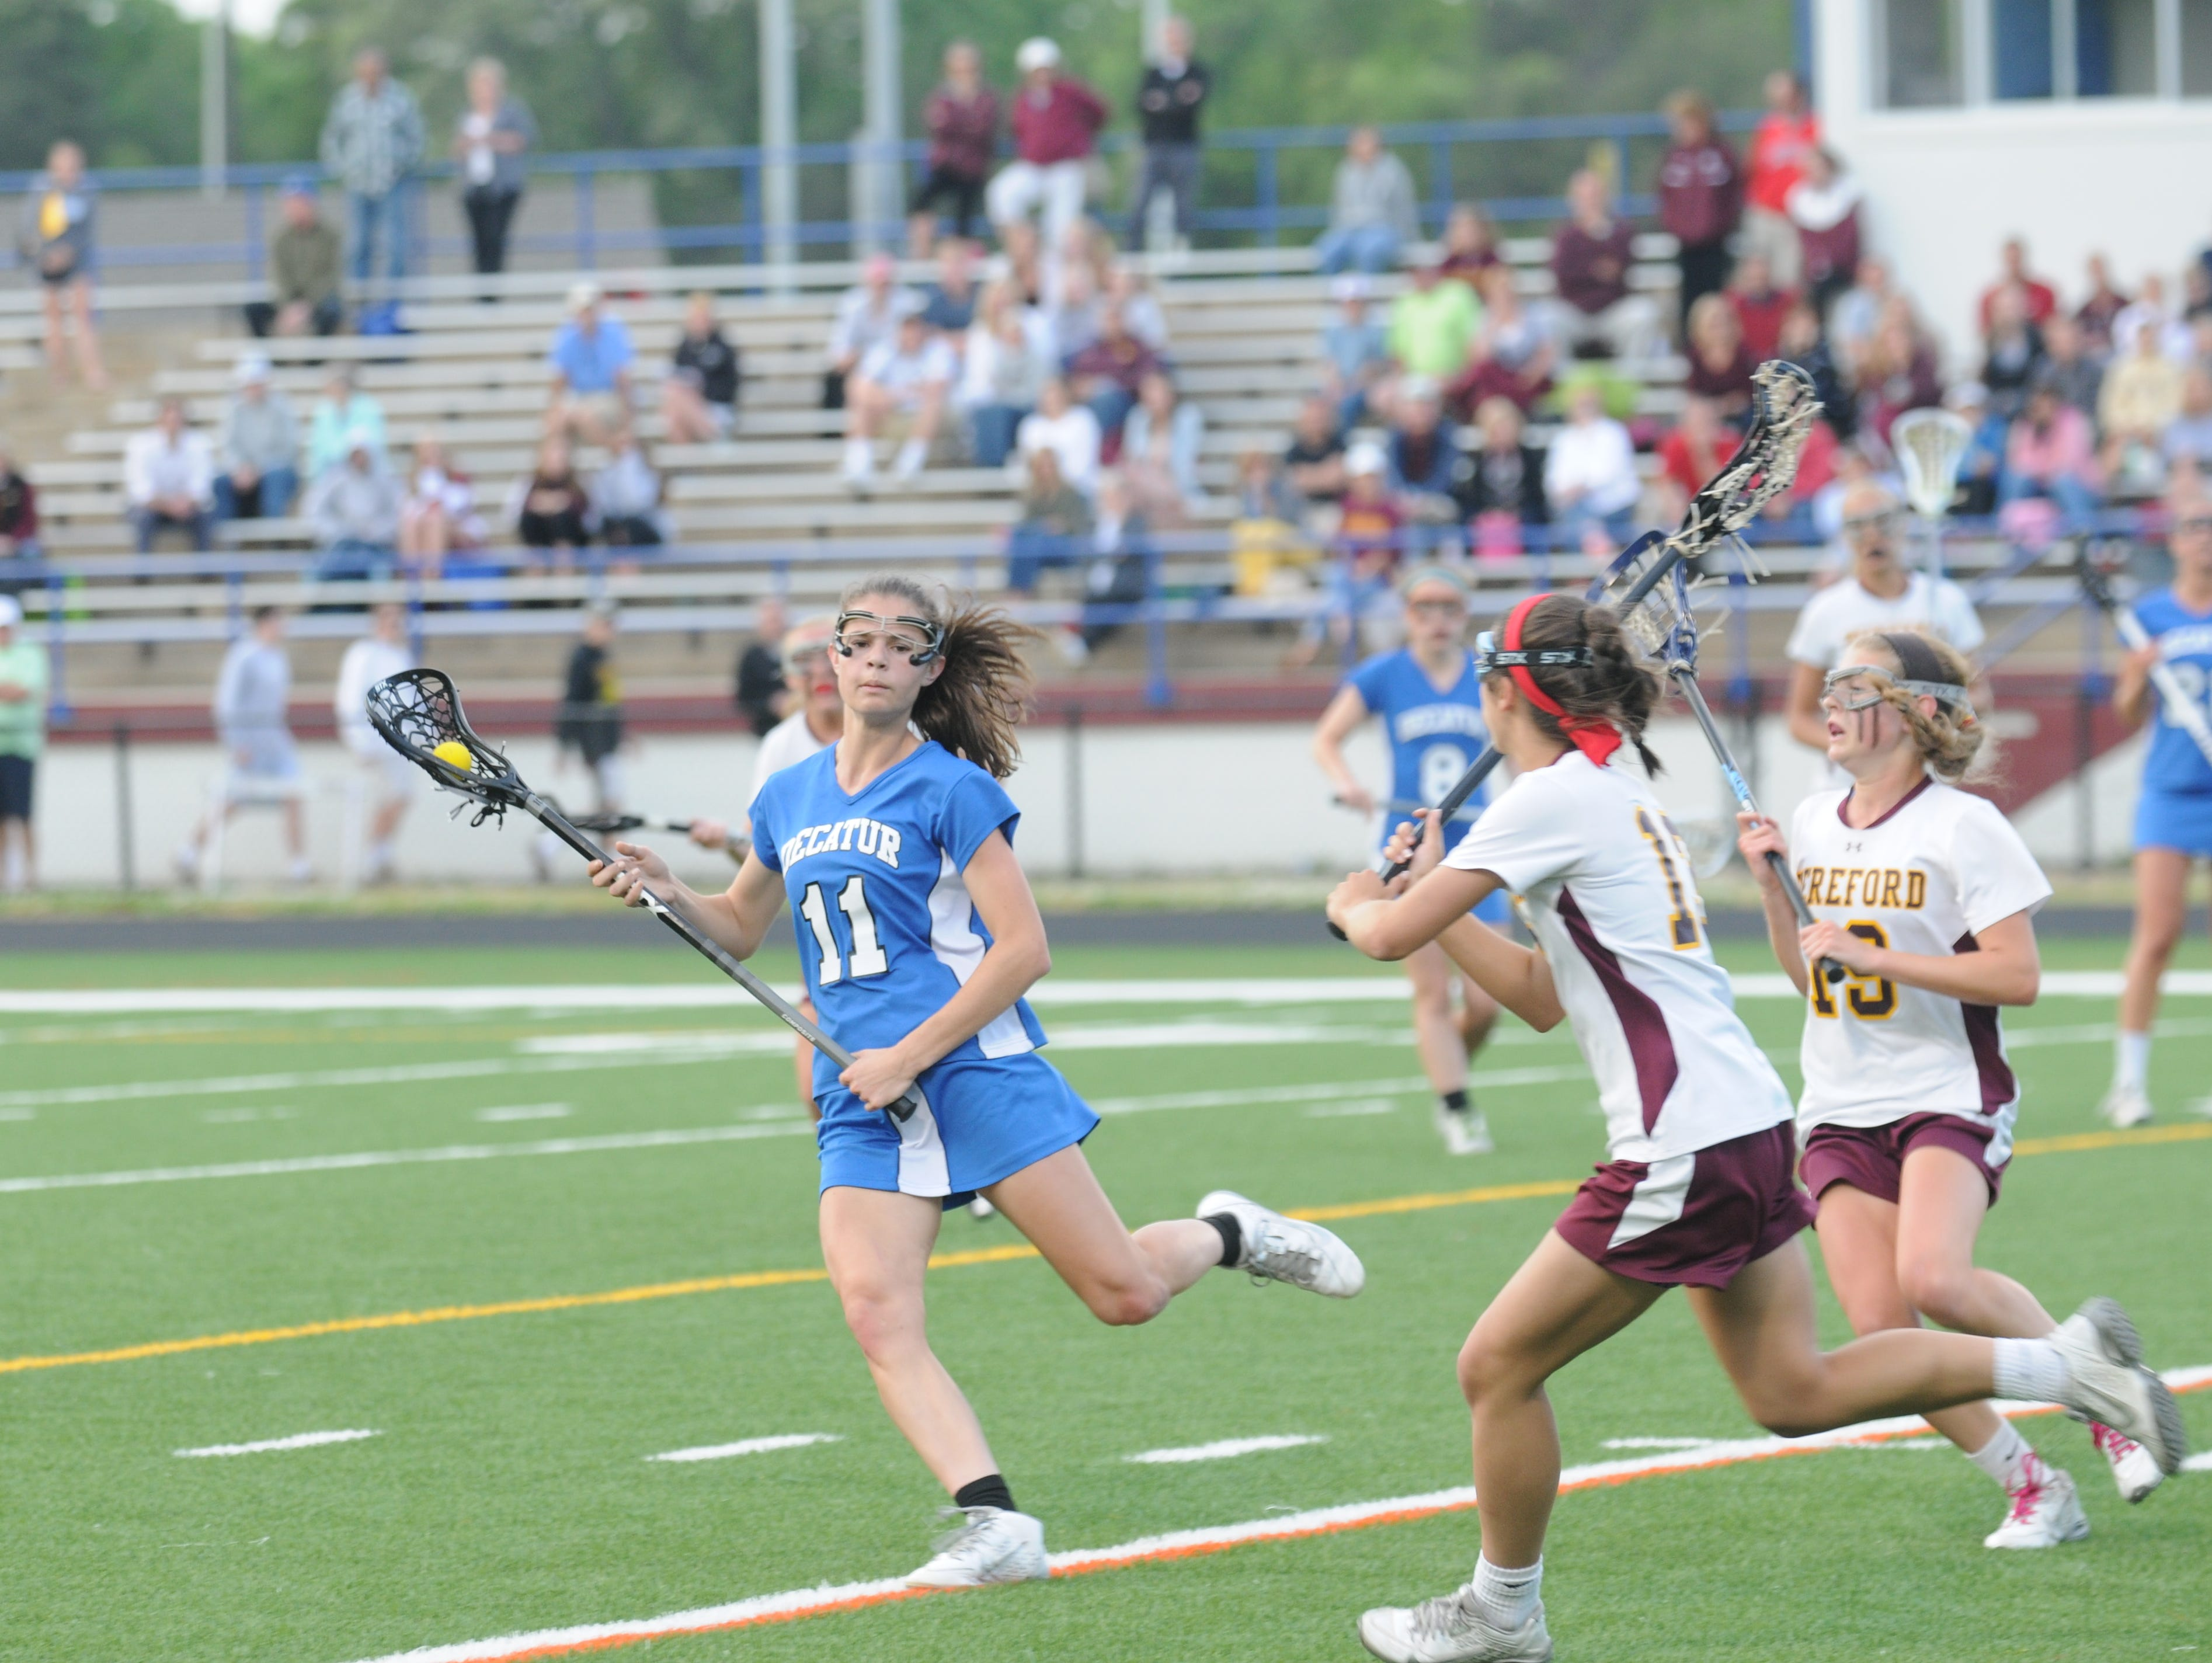 Senior Ally Beck runs away from Hereford defenders as Decatur stalled for 3:13 en route to a 7-6 win to move onto the state final.